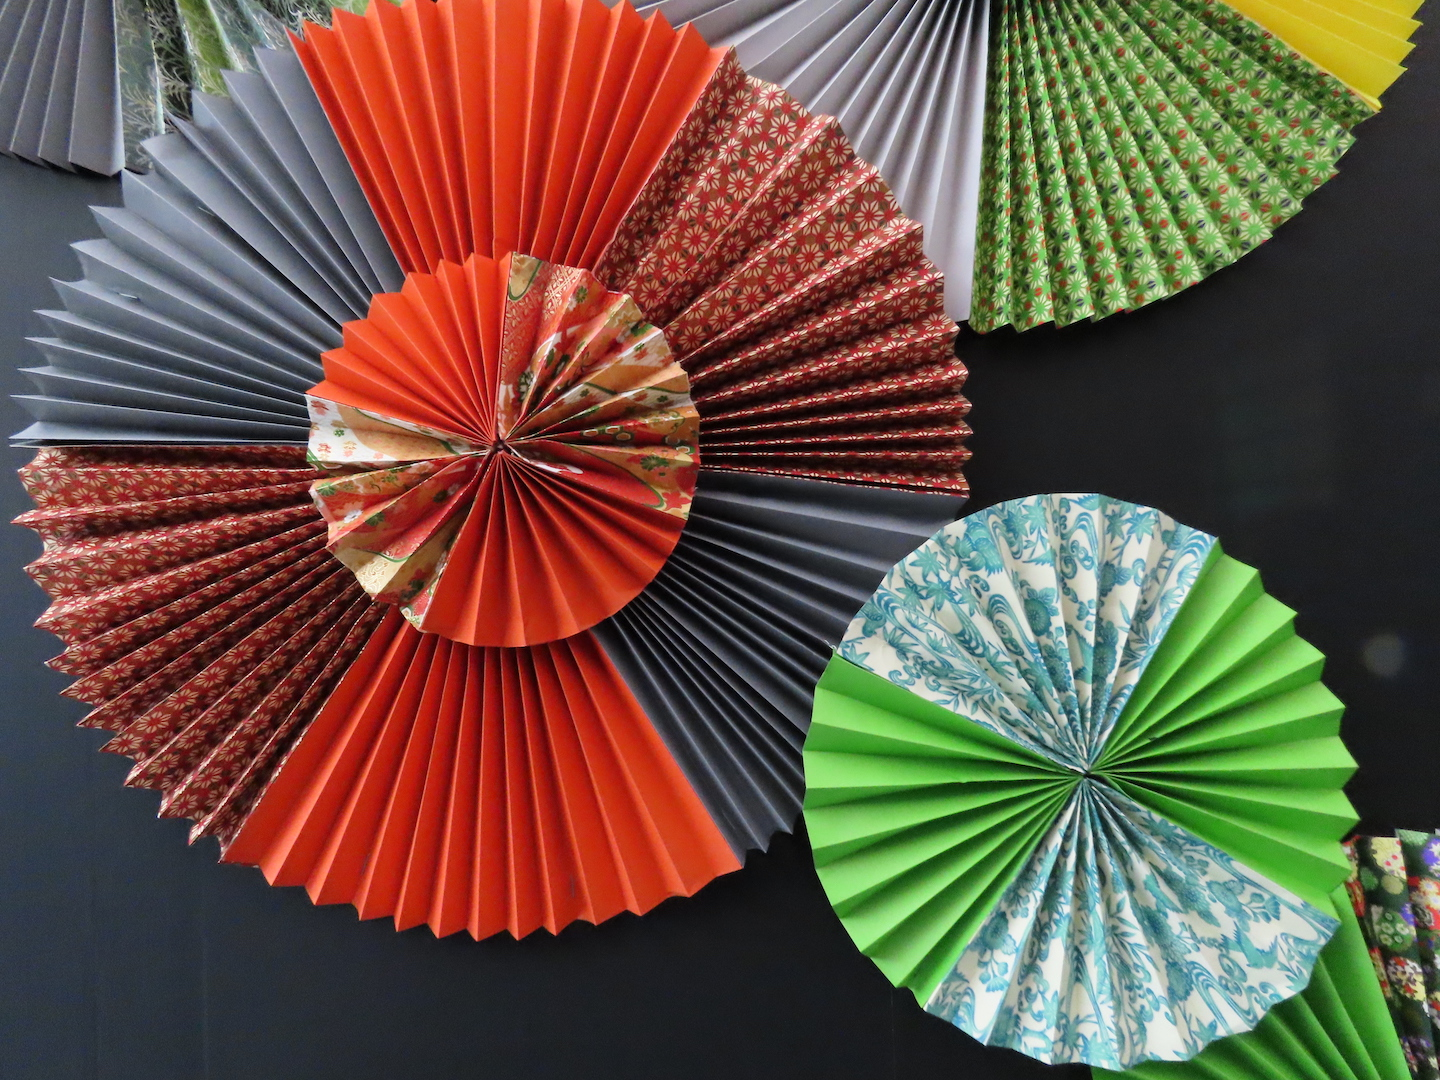 Japanese-style decoration such as umbrella and fan